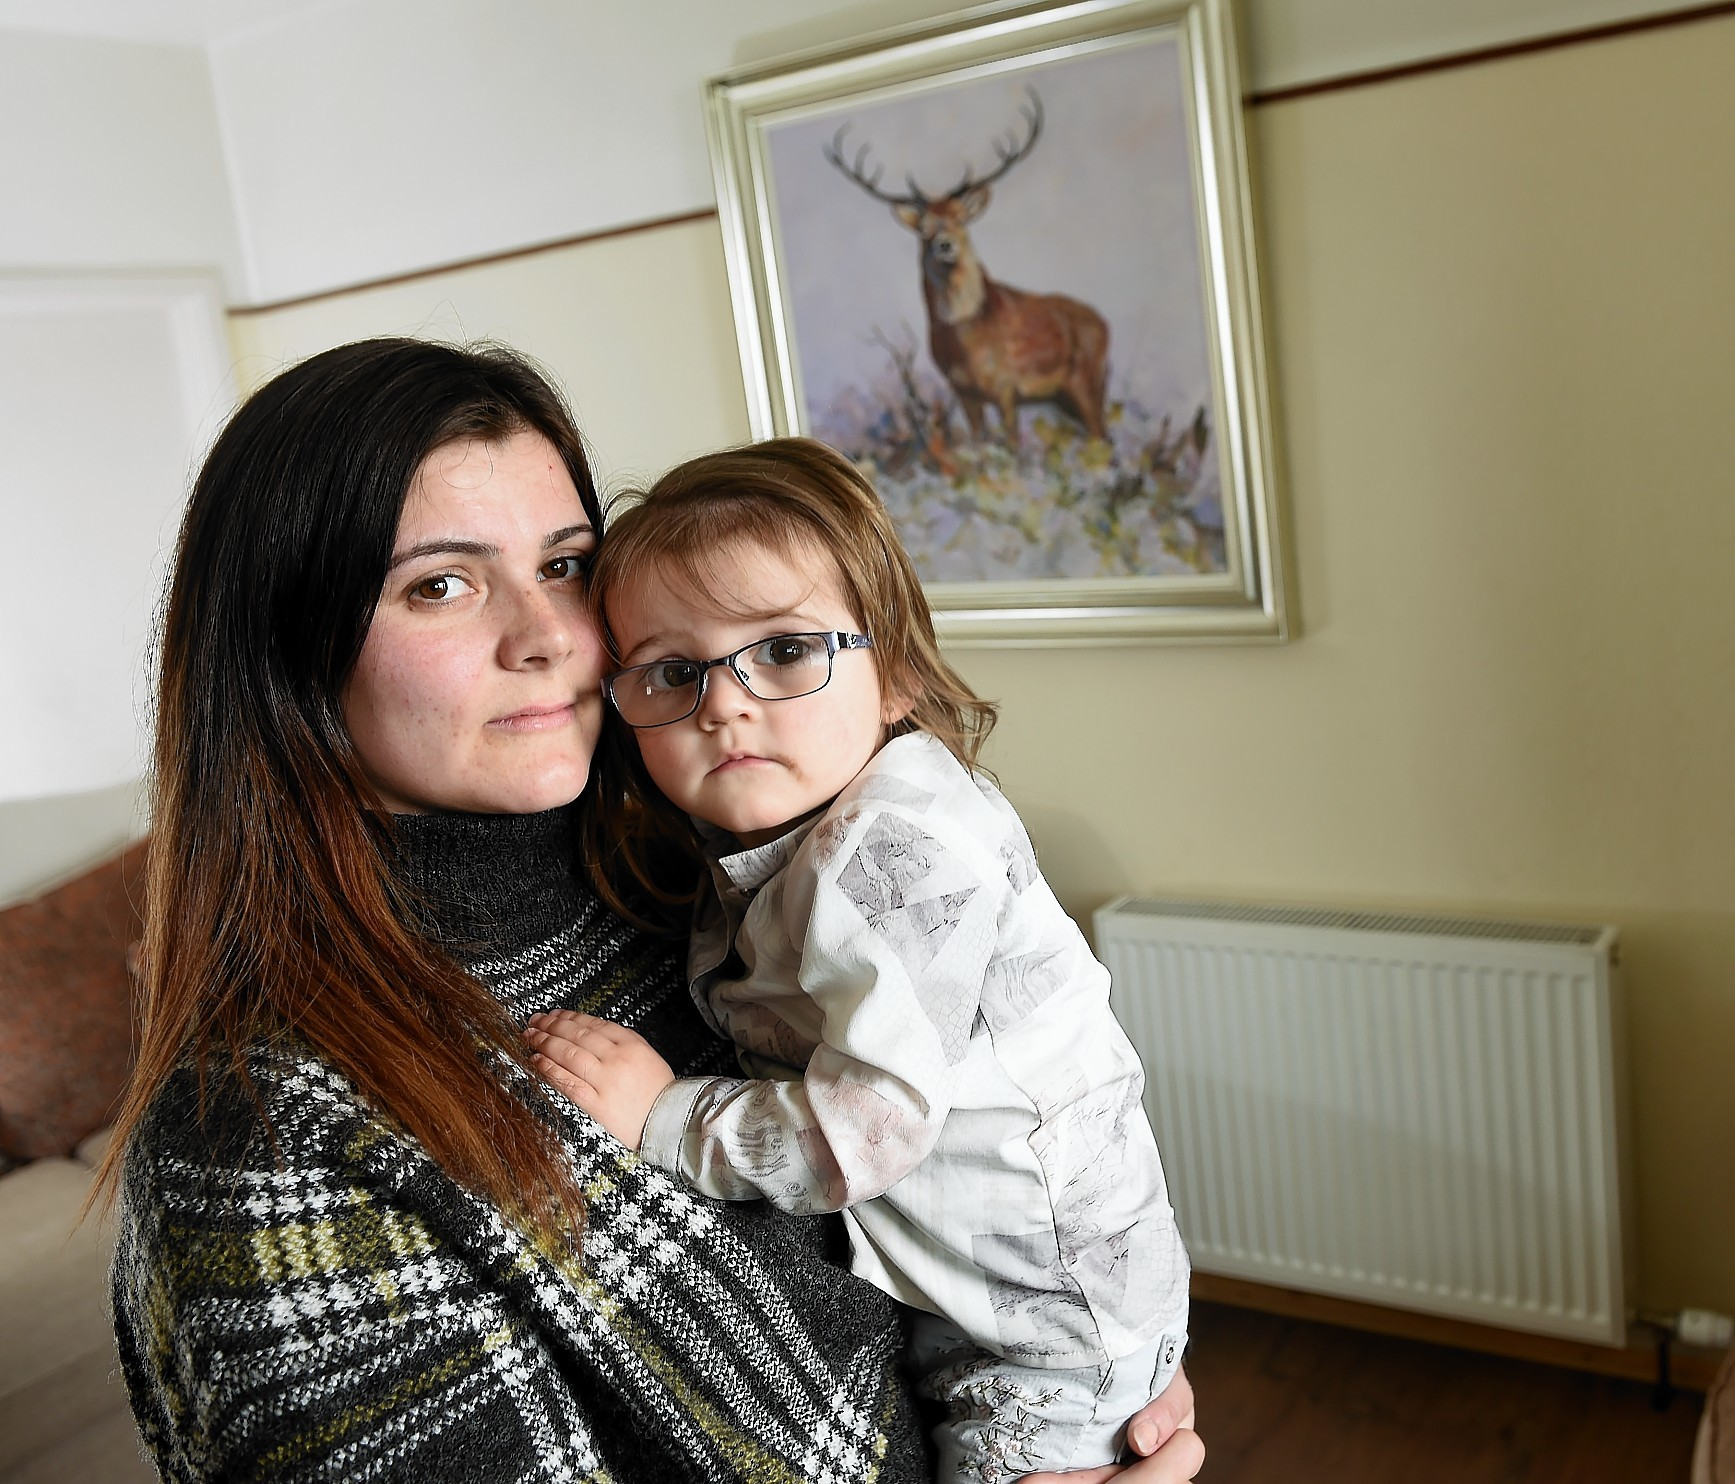 Lisa Ross of Kessock Road, Inverness with her daughter Layla (2), who is having her radiators replaced along with dozens of other residents in South Kessock following the installation of ones of the wrong size.